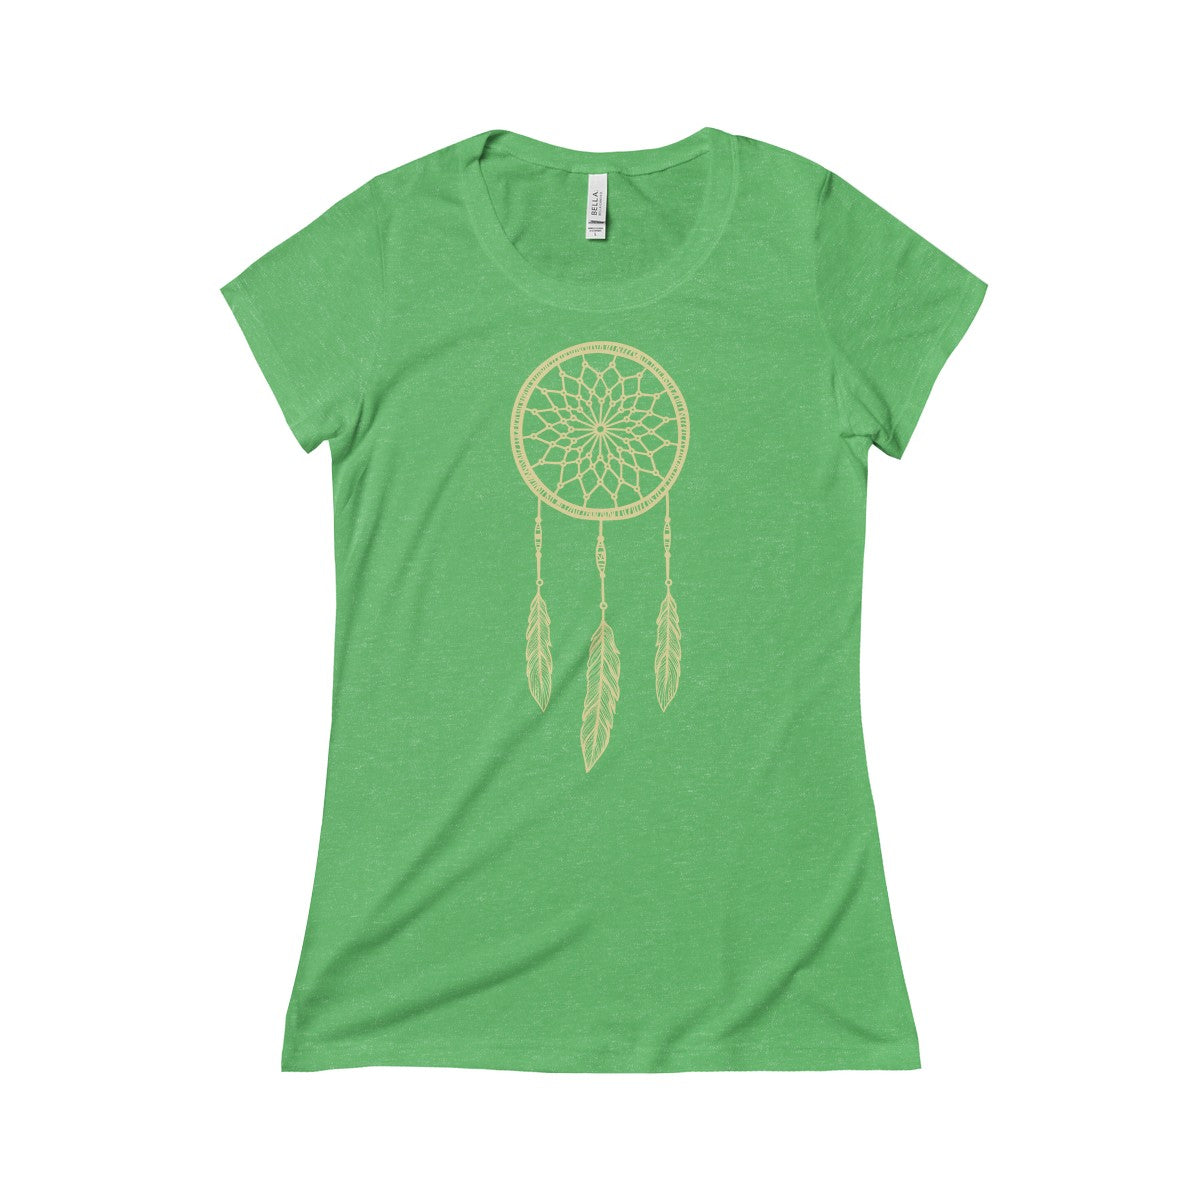 Dreamcatcher - Triblend Short Sleeve Tee